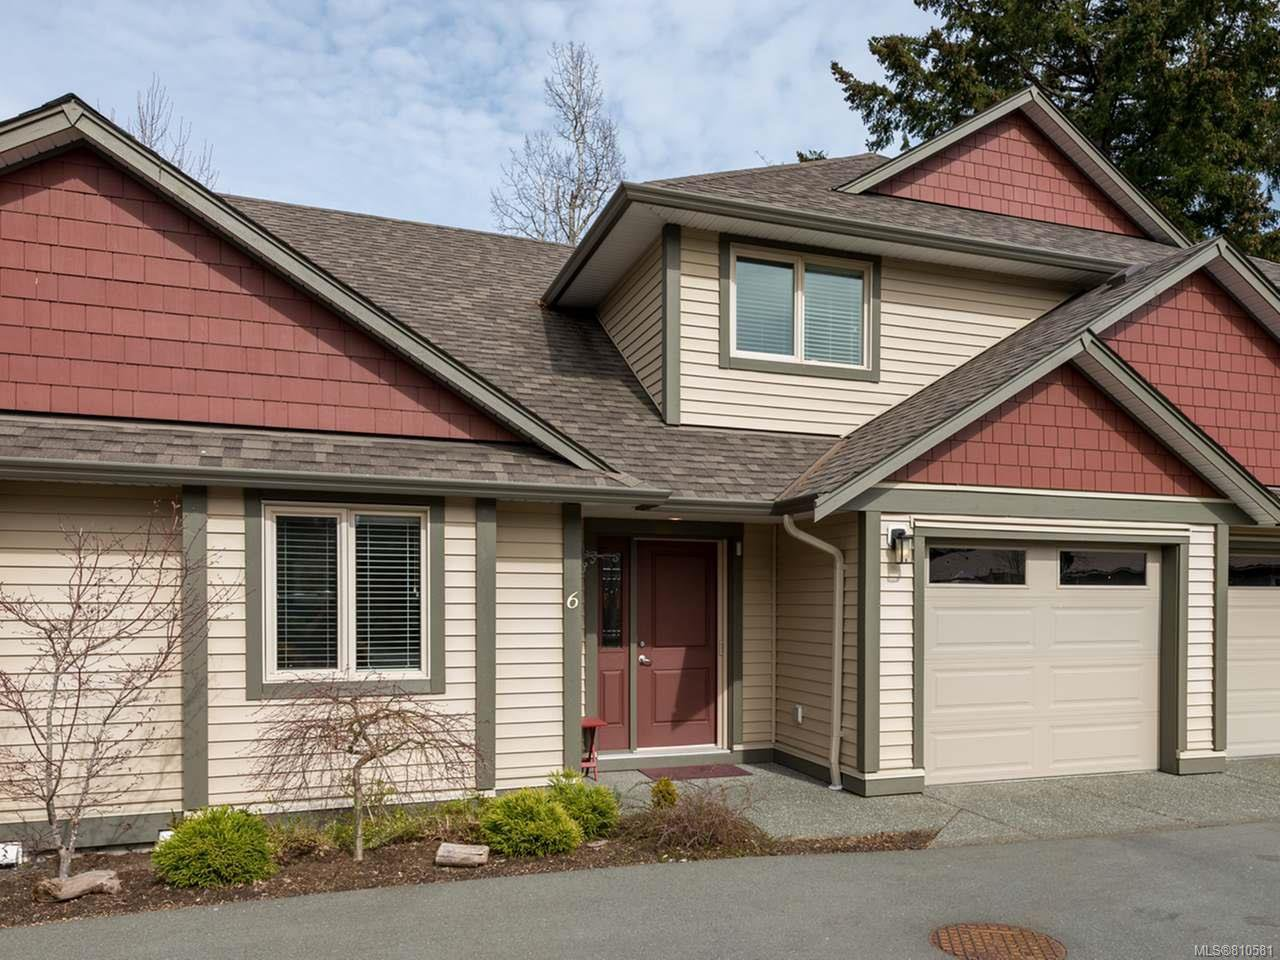 Main Photo: 6 1620 Piercy Ave in COURTENAY: CV Courtenay City Row/Townhouse for sale (Comox Valley)  : MLS®# 810581